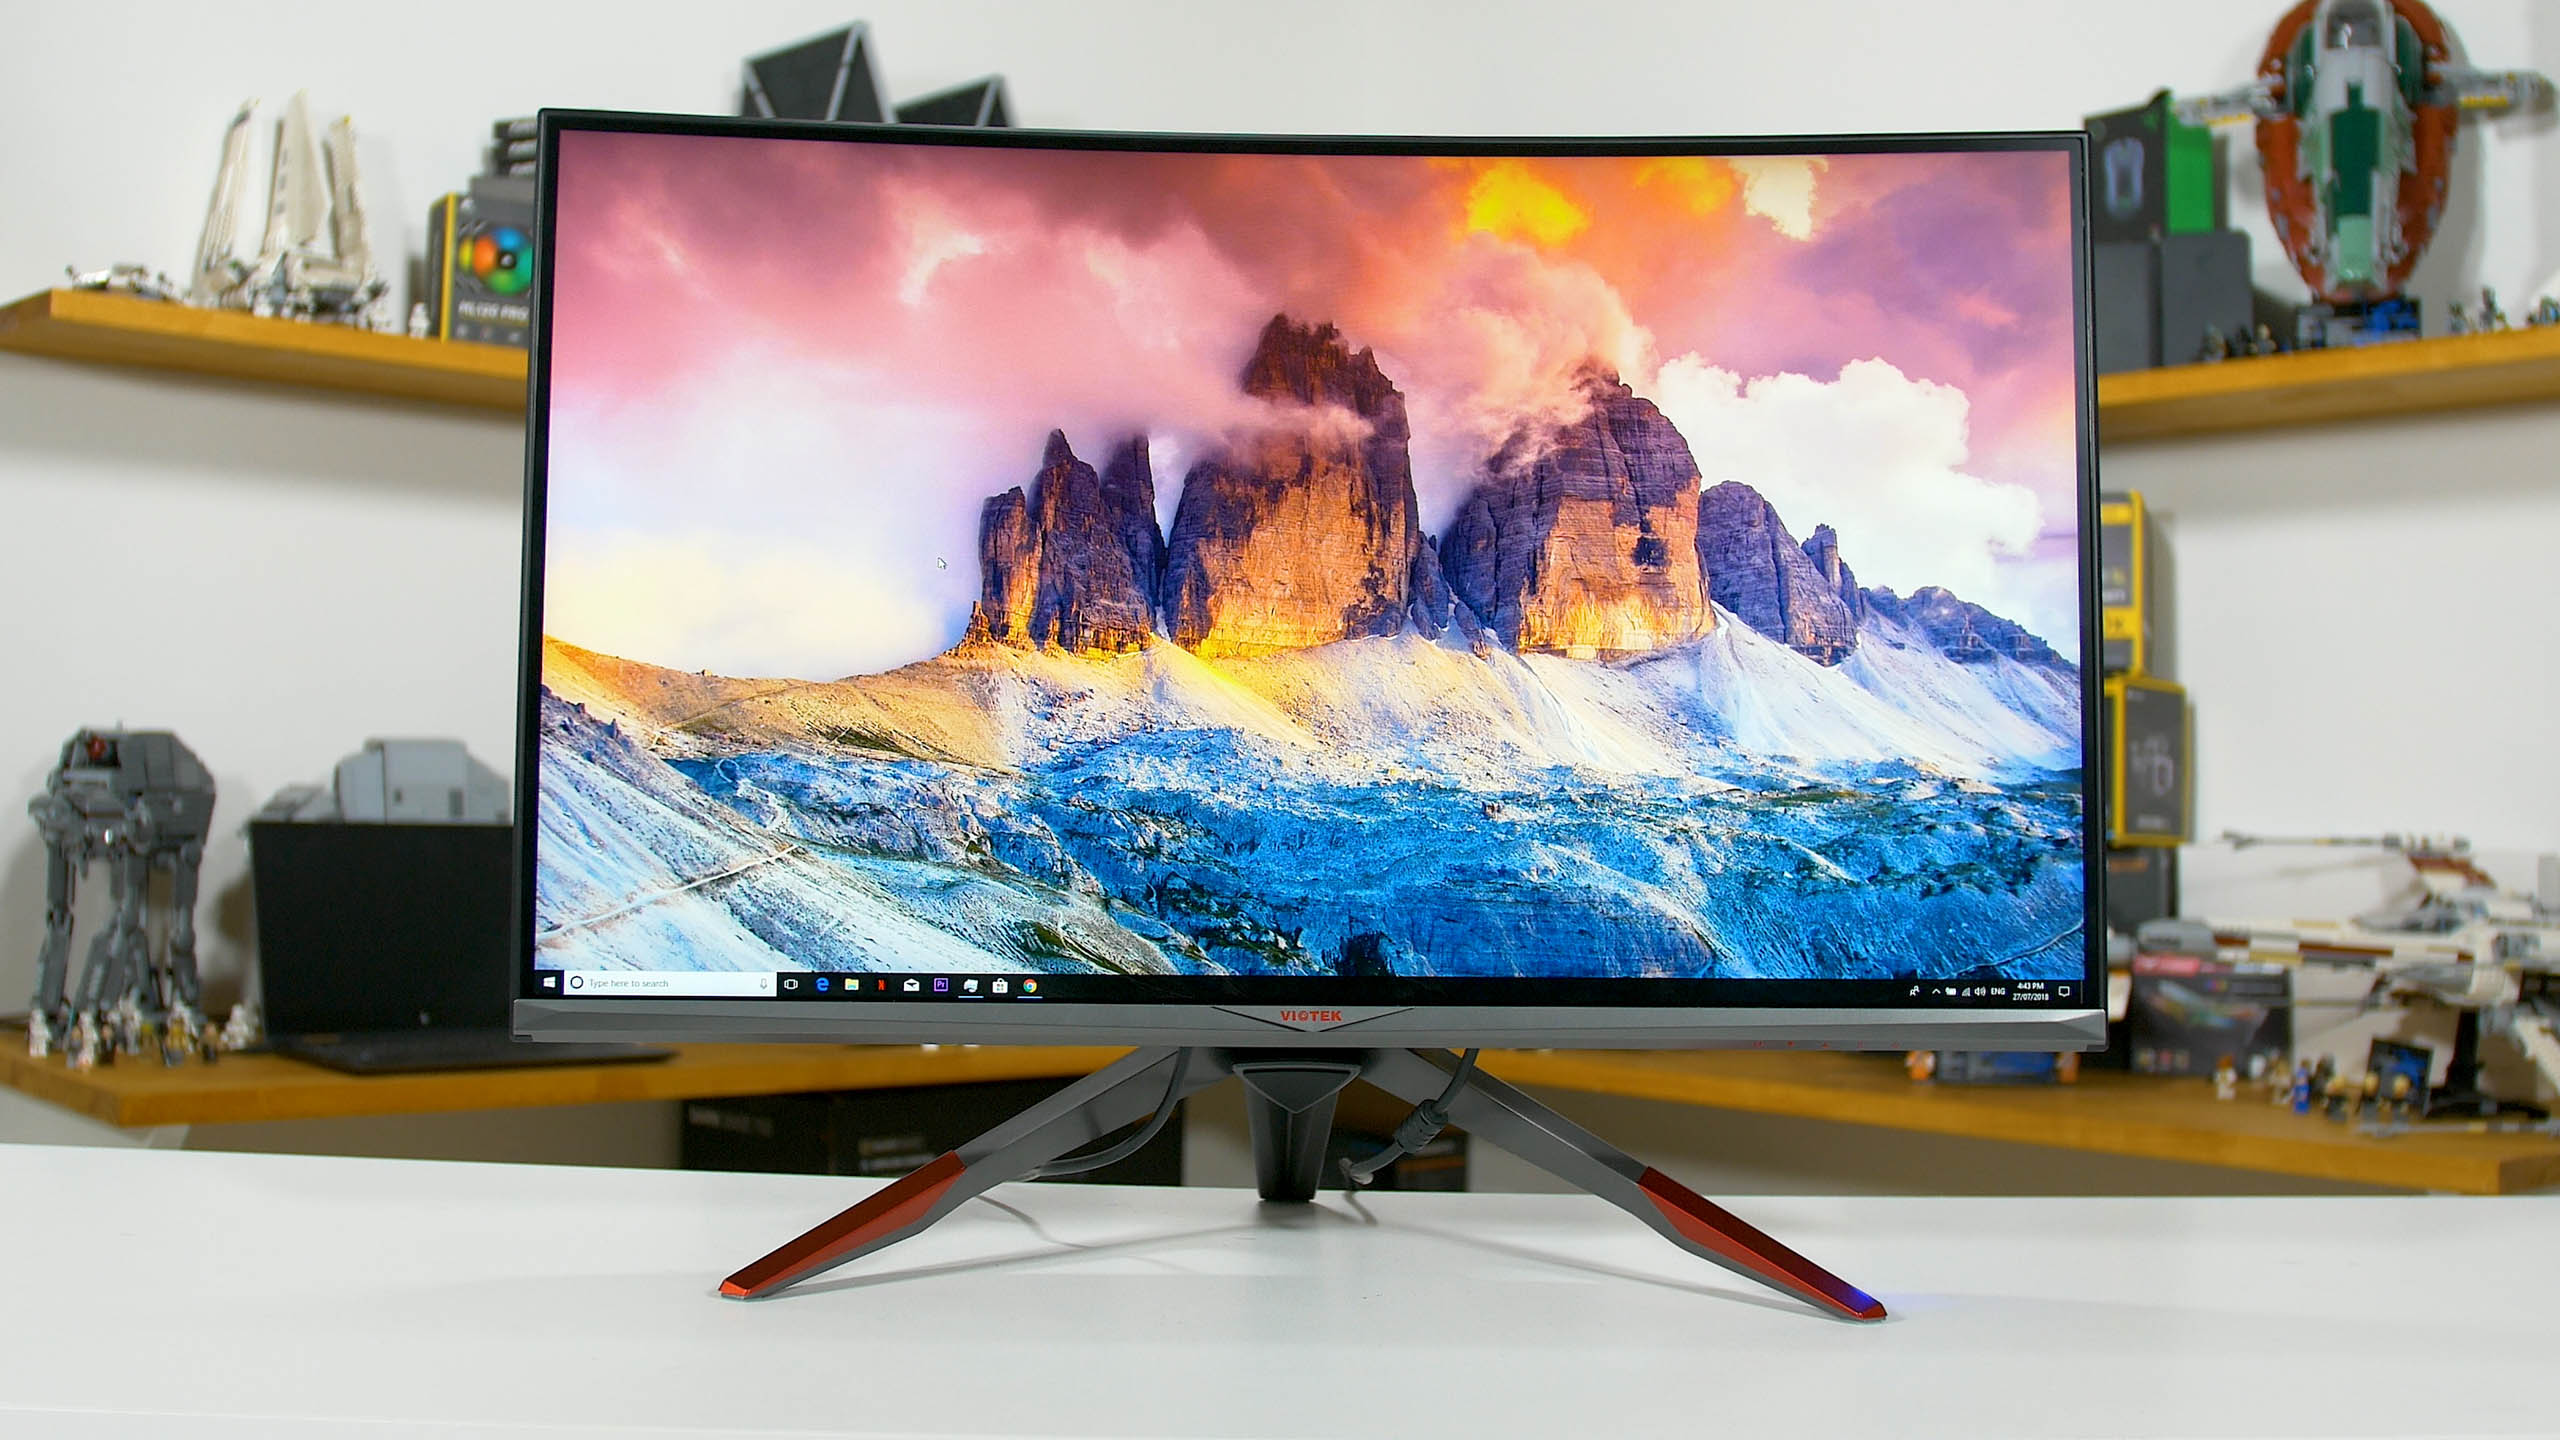 Tested: One of the Best-Selling (No Brand) Gaming Monitors on Amazon